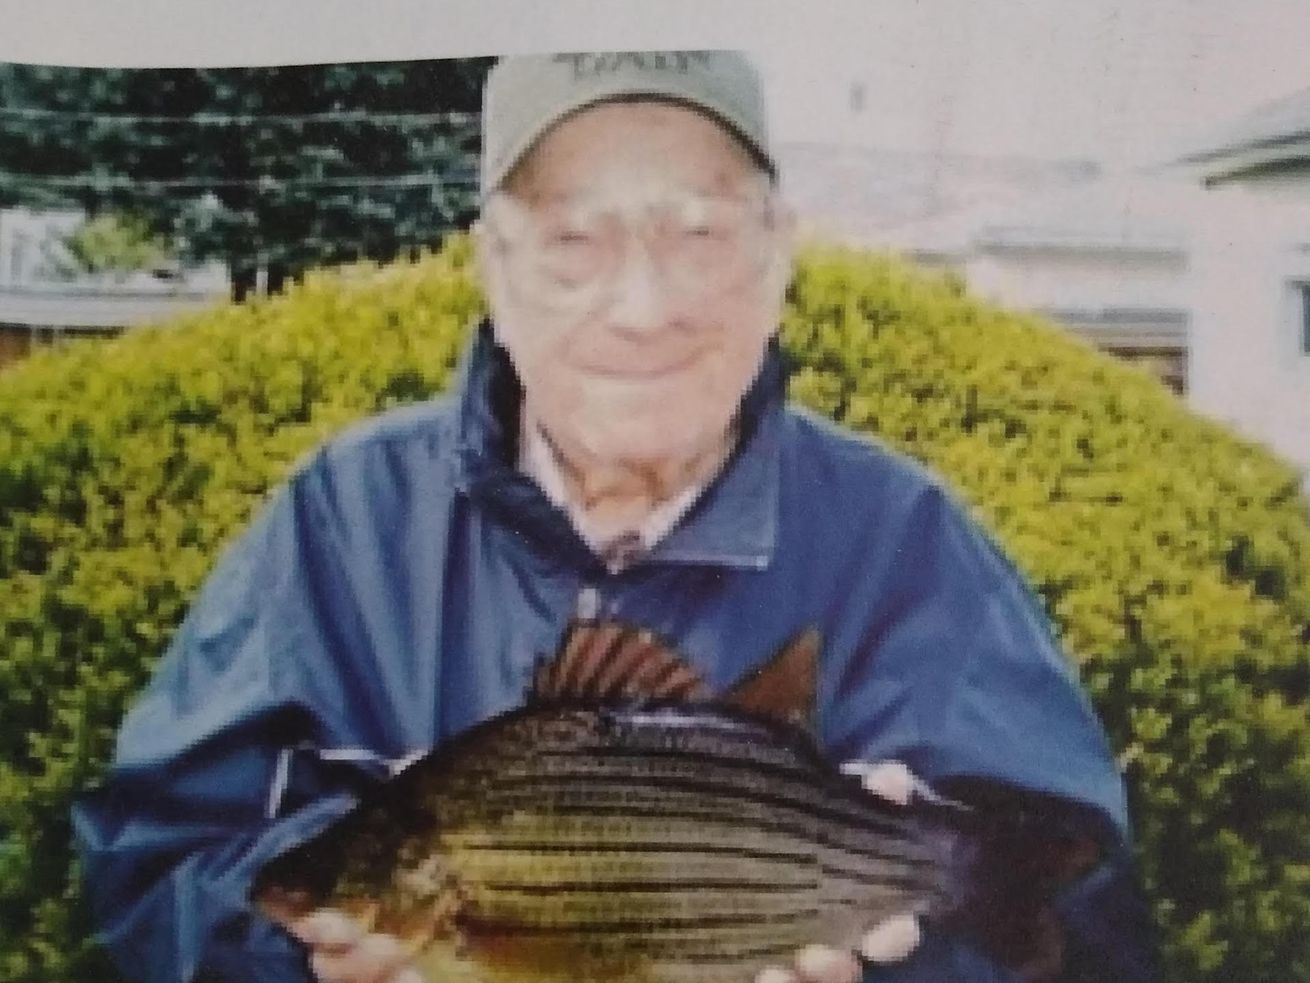 Casey Bloom with the yellow bass he caught on the Wolf River in Wisconsin in 2012 that broke a 40-year-old record for a yellow bass caught with a hook and line.